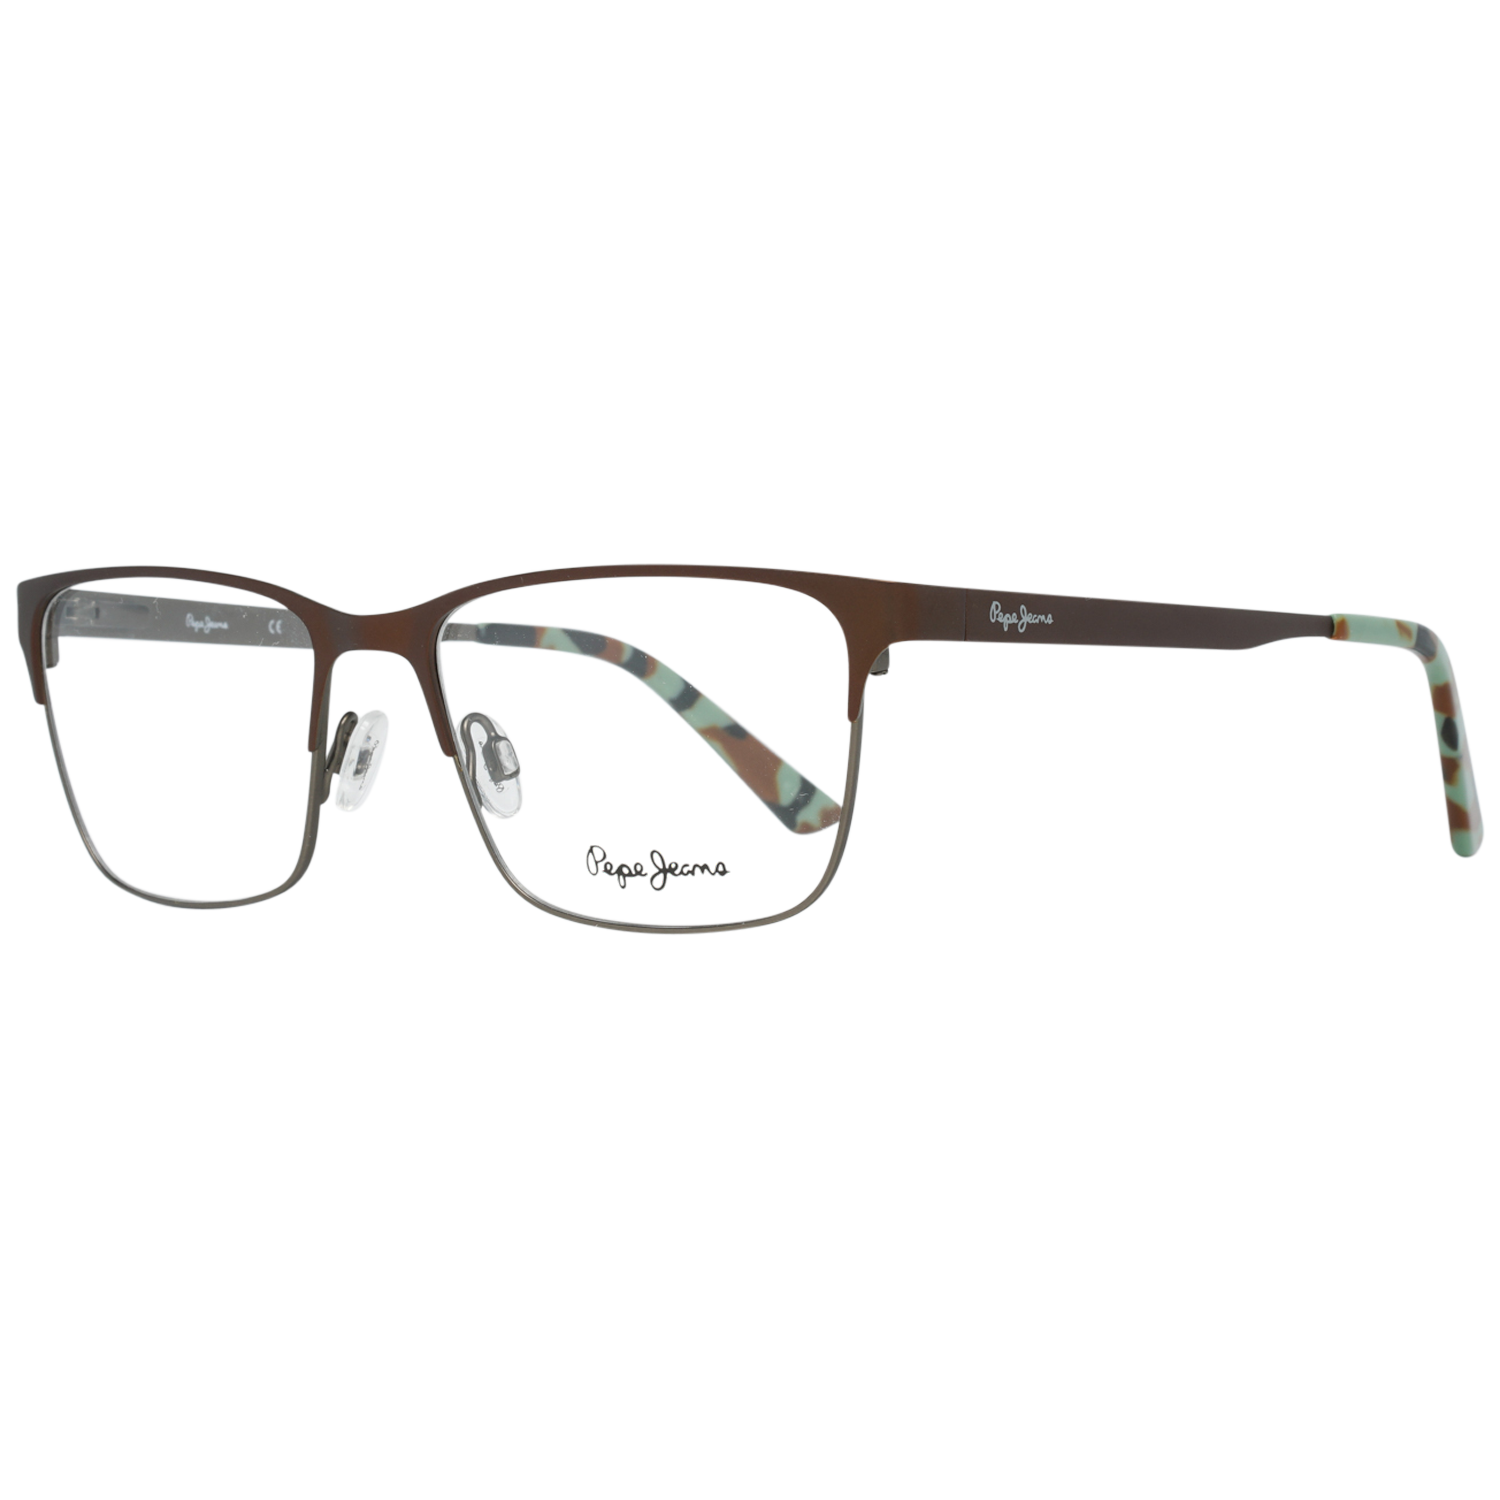 Pepe Jeans Optical Frame P1205 C2 Dewey Unisex Brown